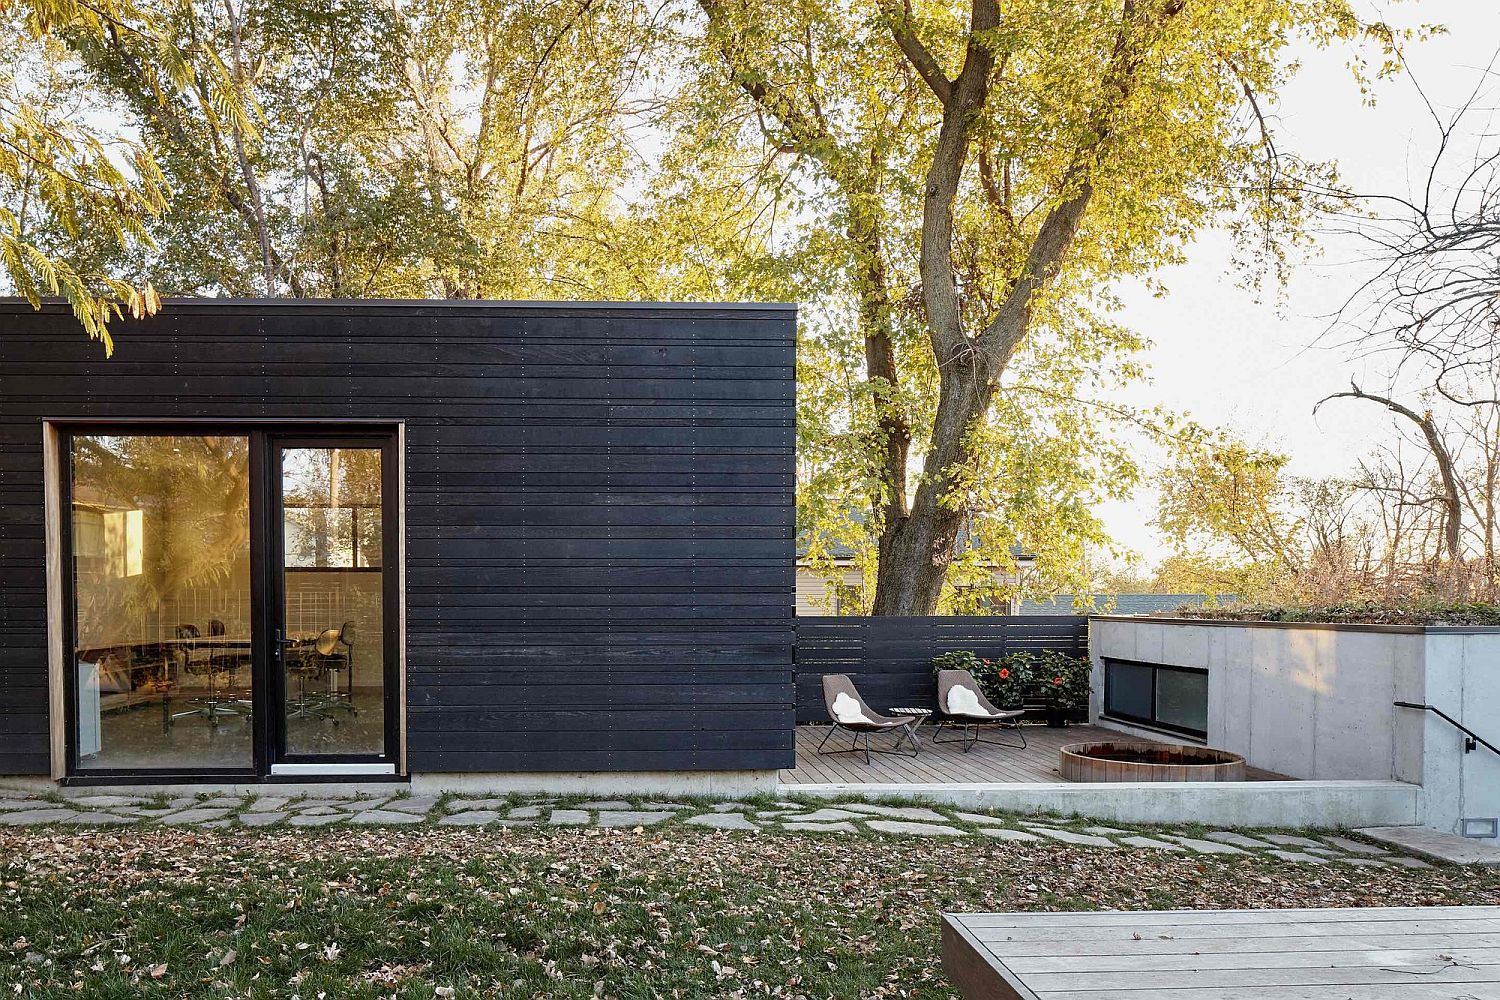 Black exterior and glass doors shape a stylish Kansas City home